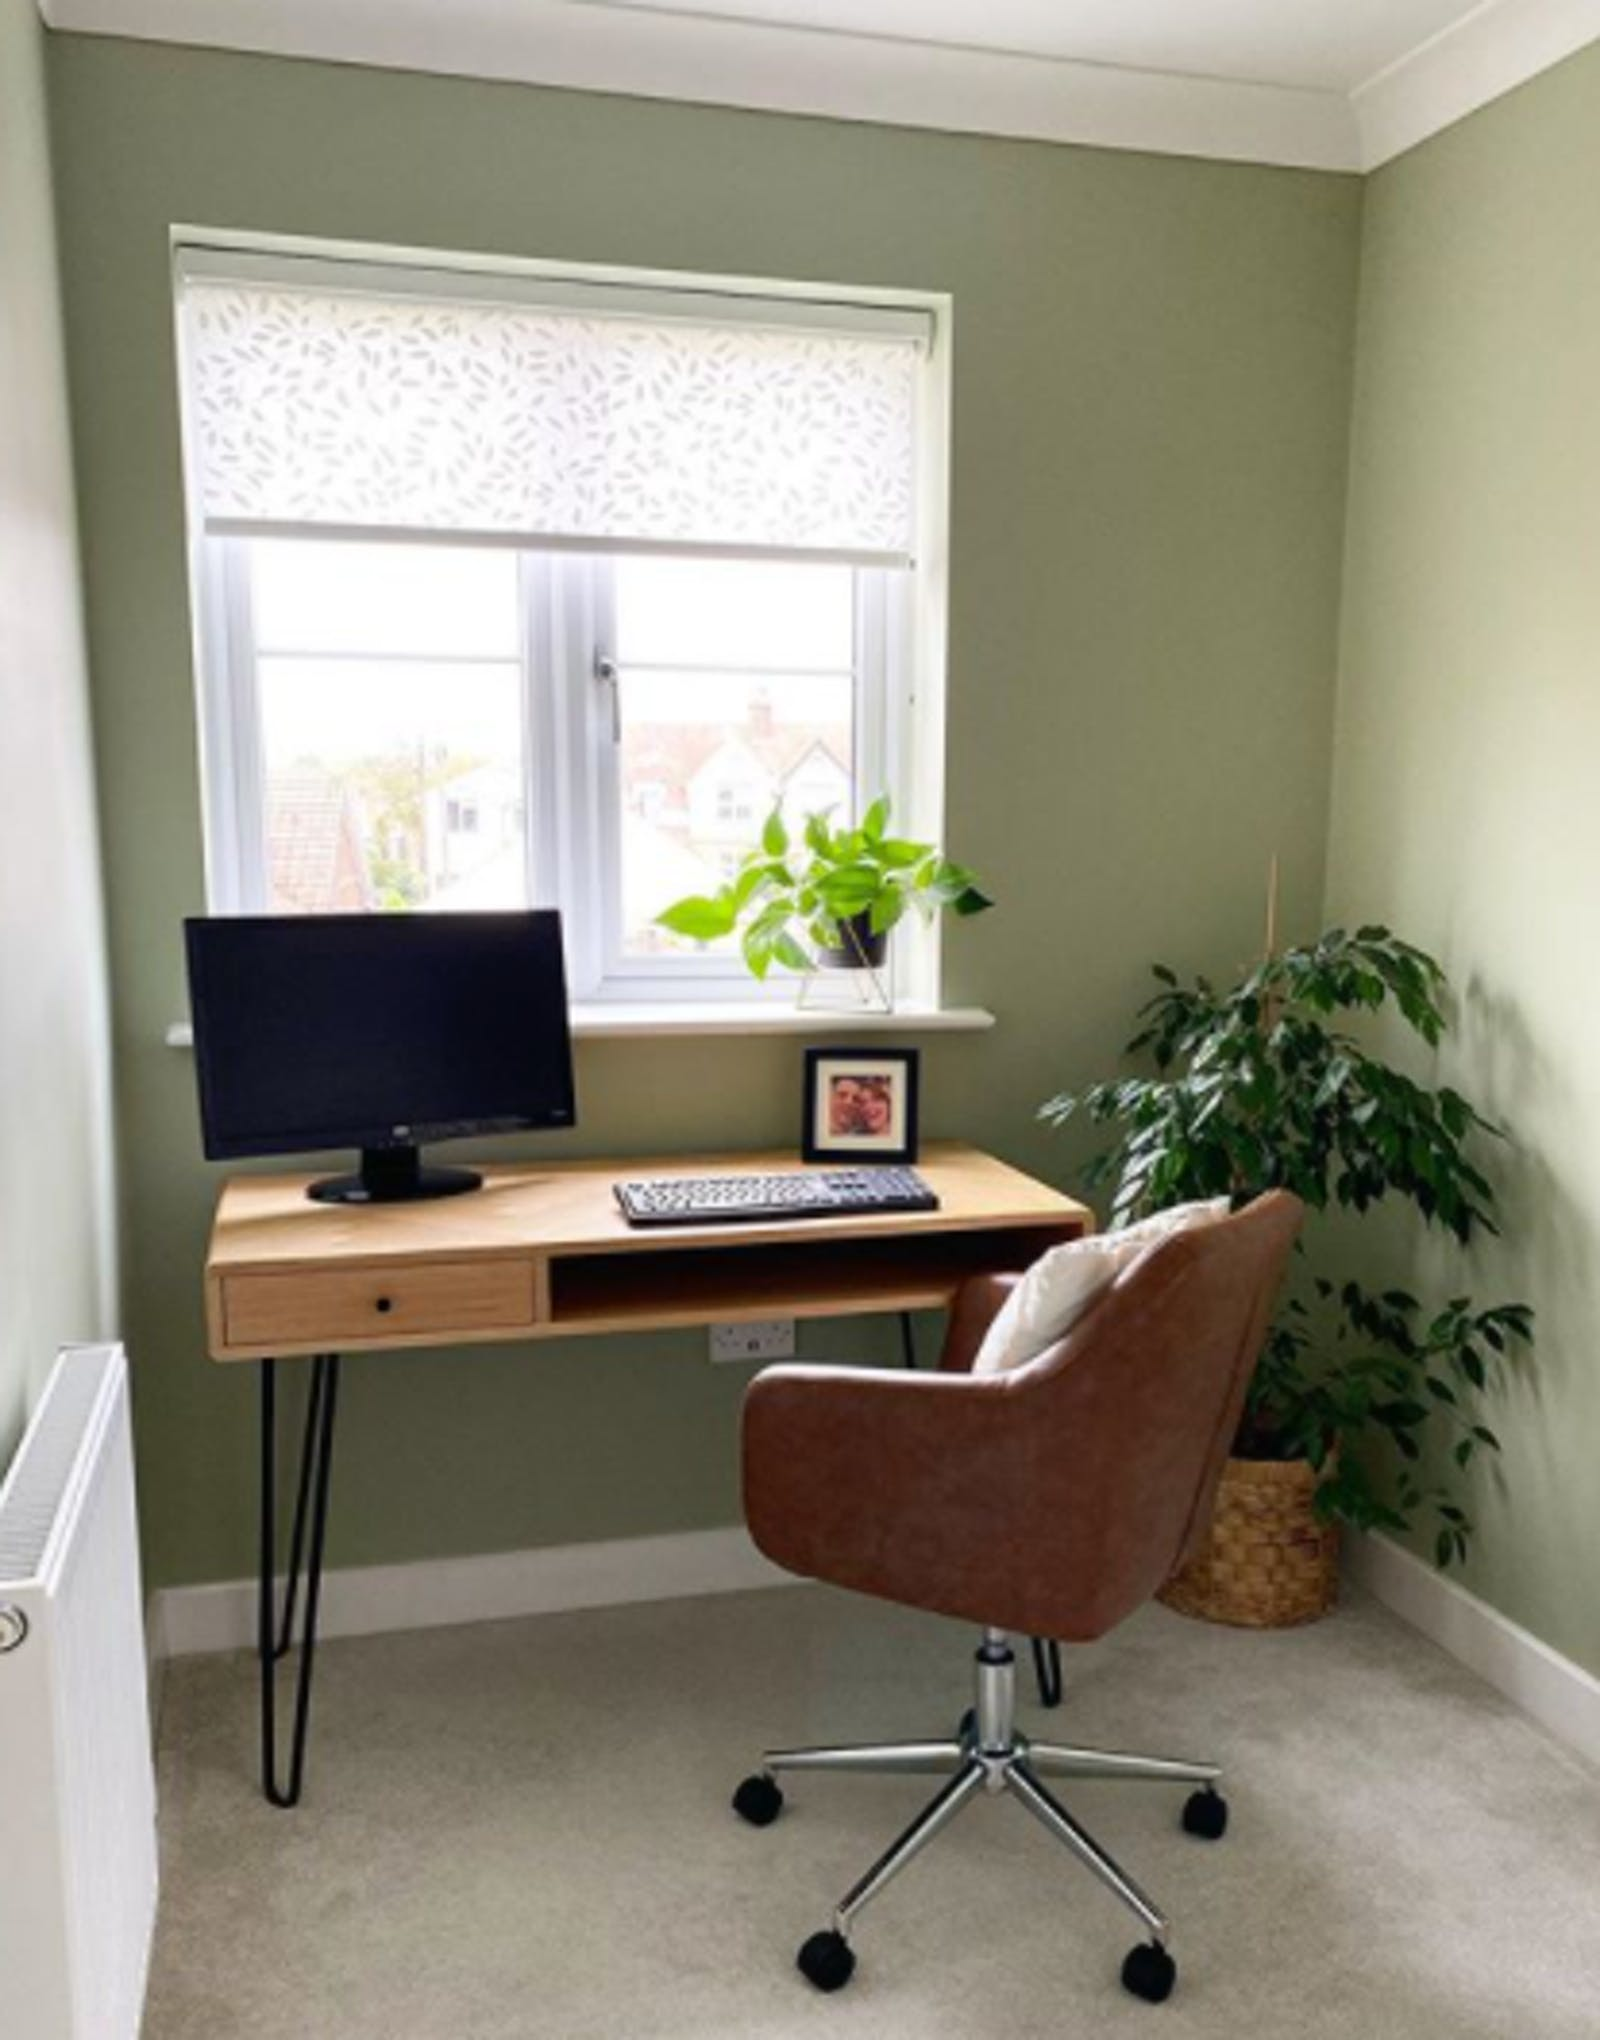 Home office / study painted in Lick Green 01